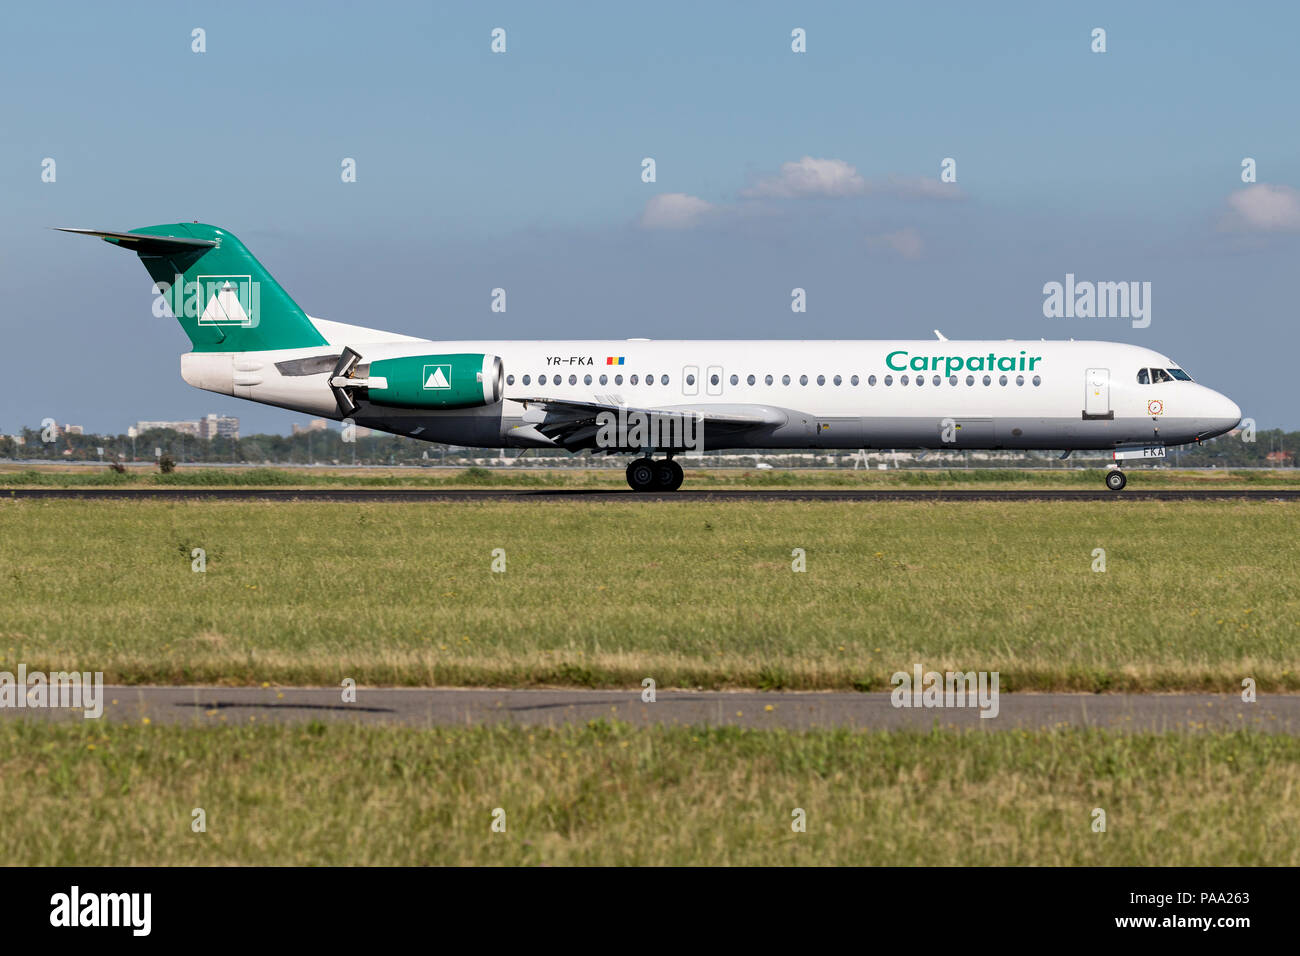 Romanian Carpatair Fokker F100 with registration YR-FKA just landed on runway 18R (Polderbaan) of Amsterdam Airport Schiphol. - Stock Image